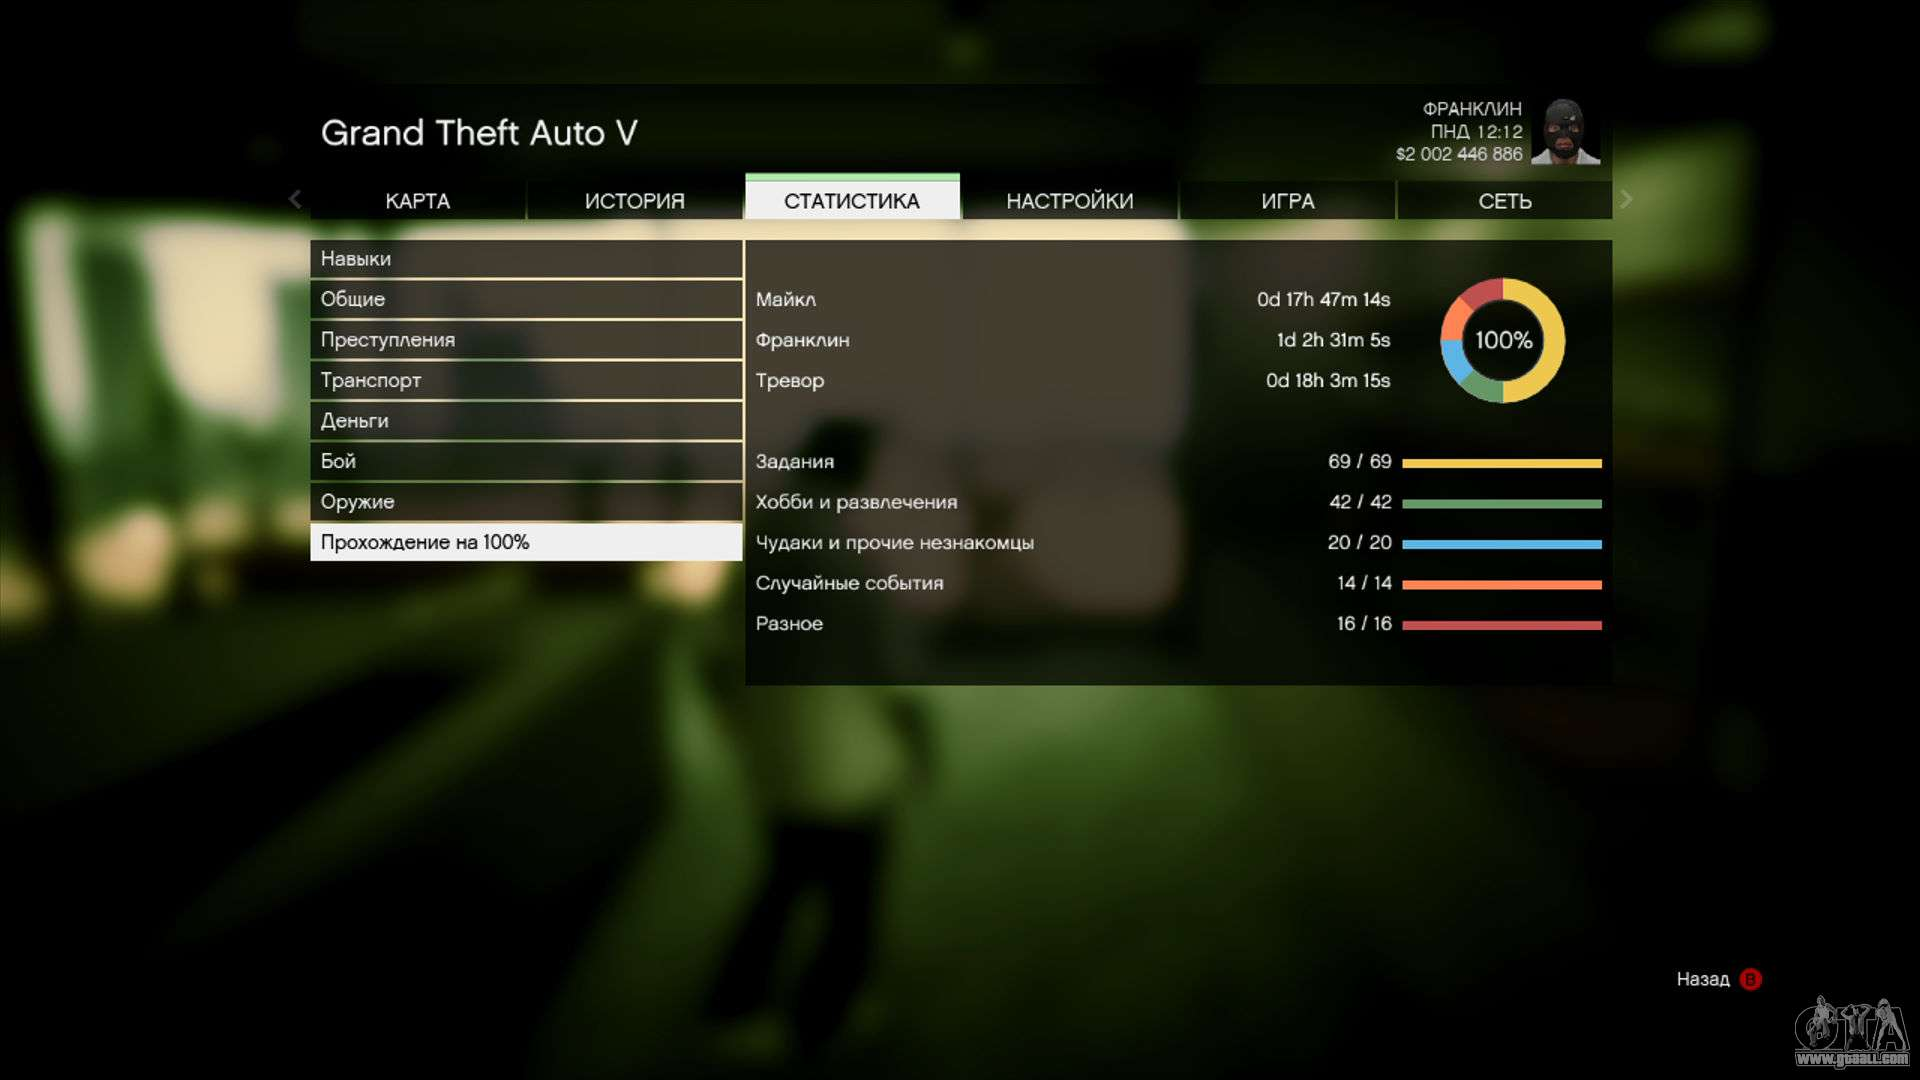 Grand Theft Auto V Save Game Files for PlayStation 3 ...